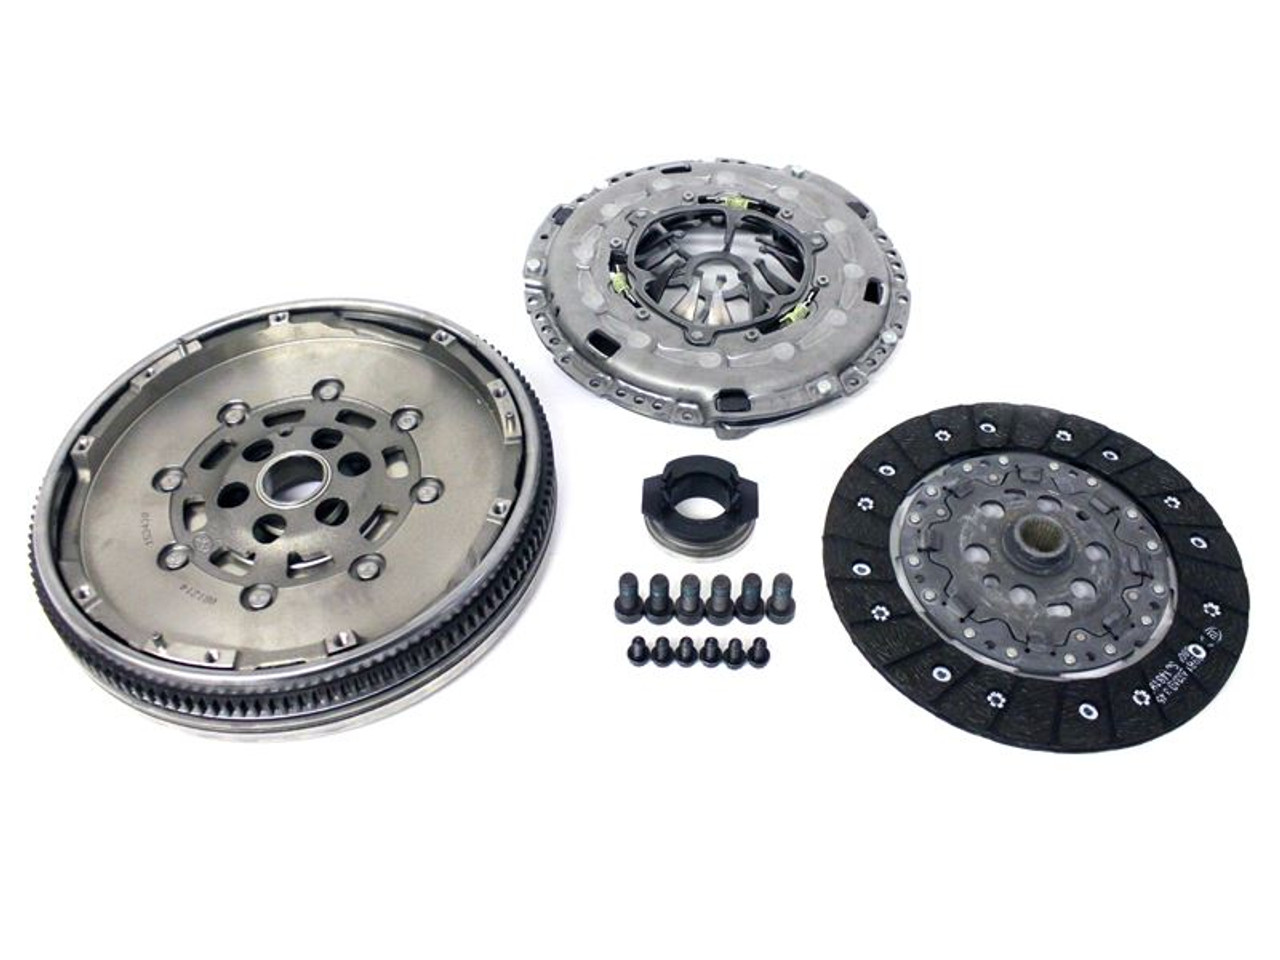 CLUTCH KIT AND FLYWHEEL WITH BOLTS FOR VW VOLKSWAGEN TRANSPORTER T5 1.9TDI TDI